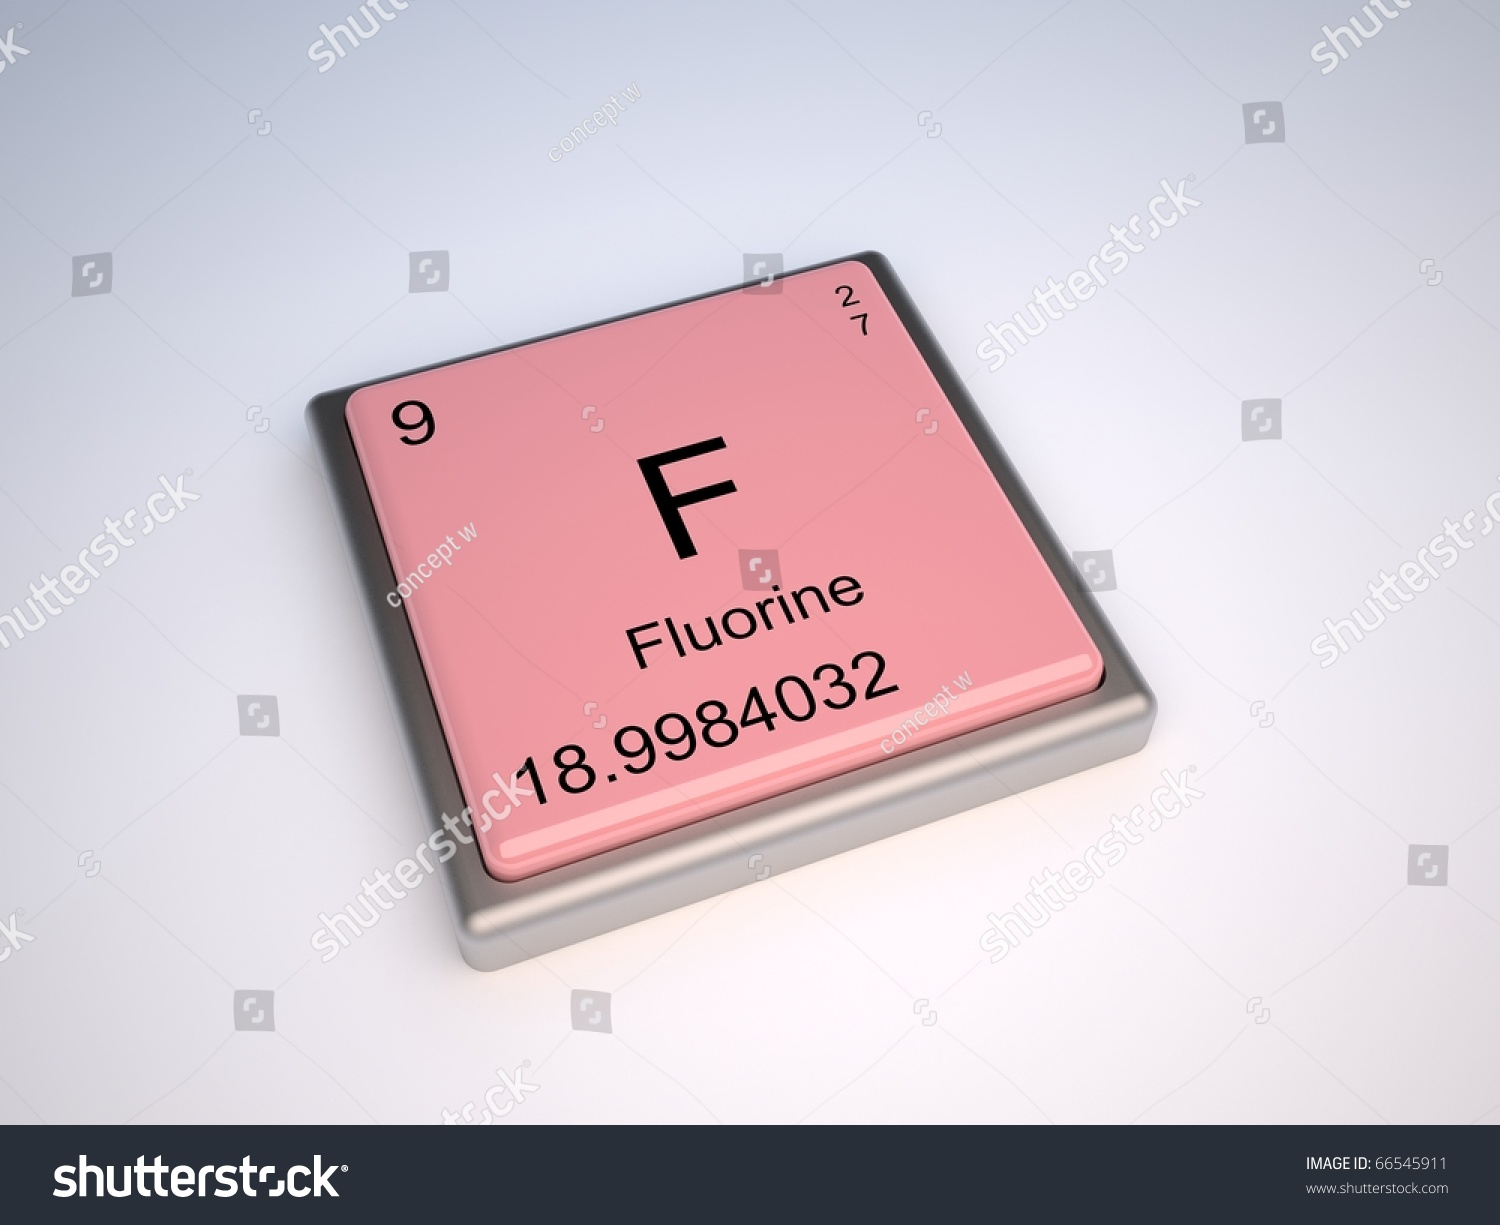 Fluorine Chemical Element Periodic Table Symbol Stock Illustration